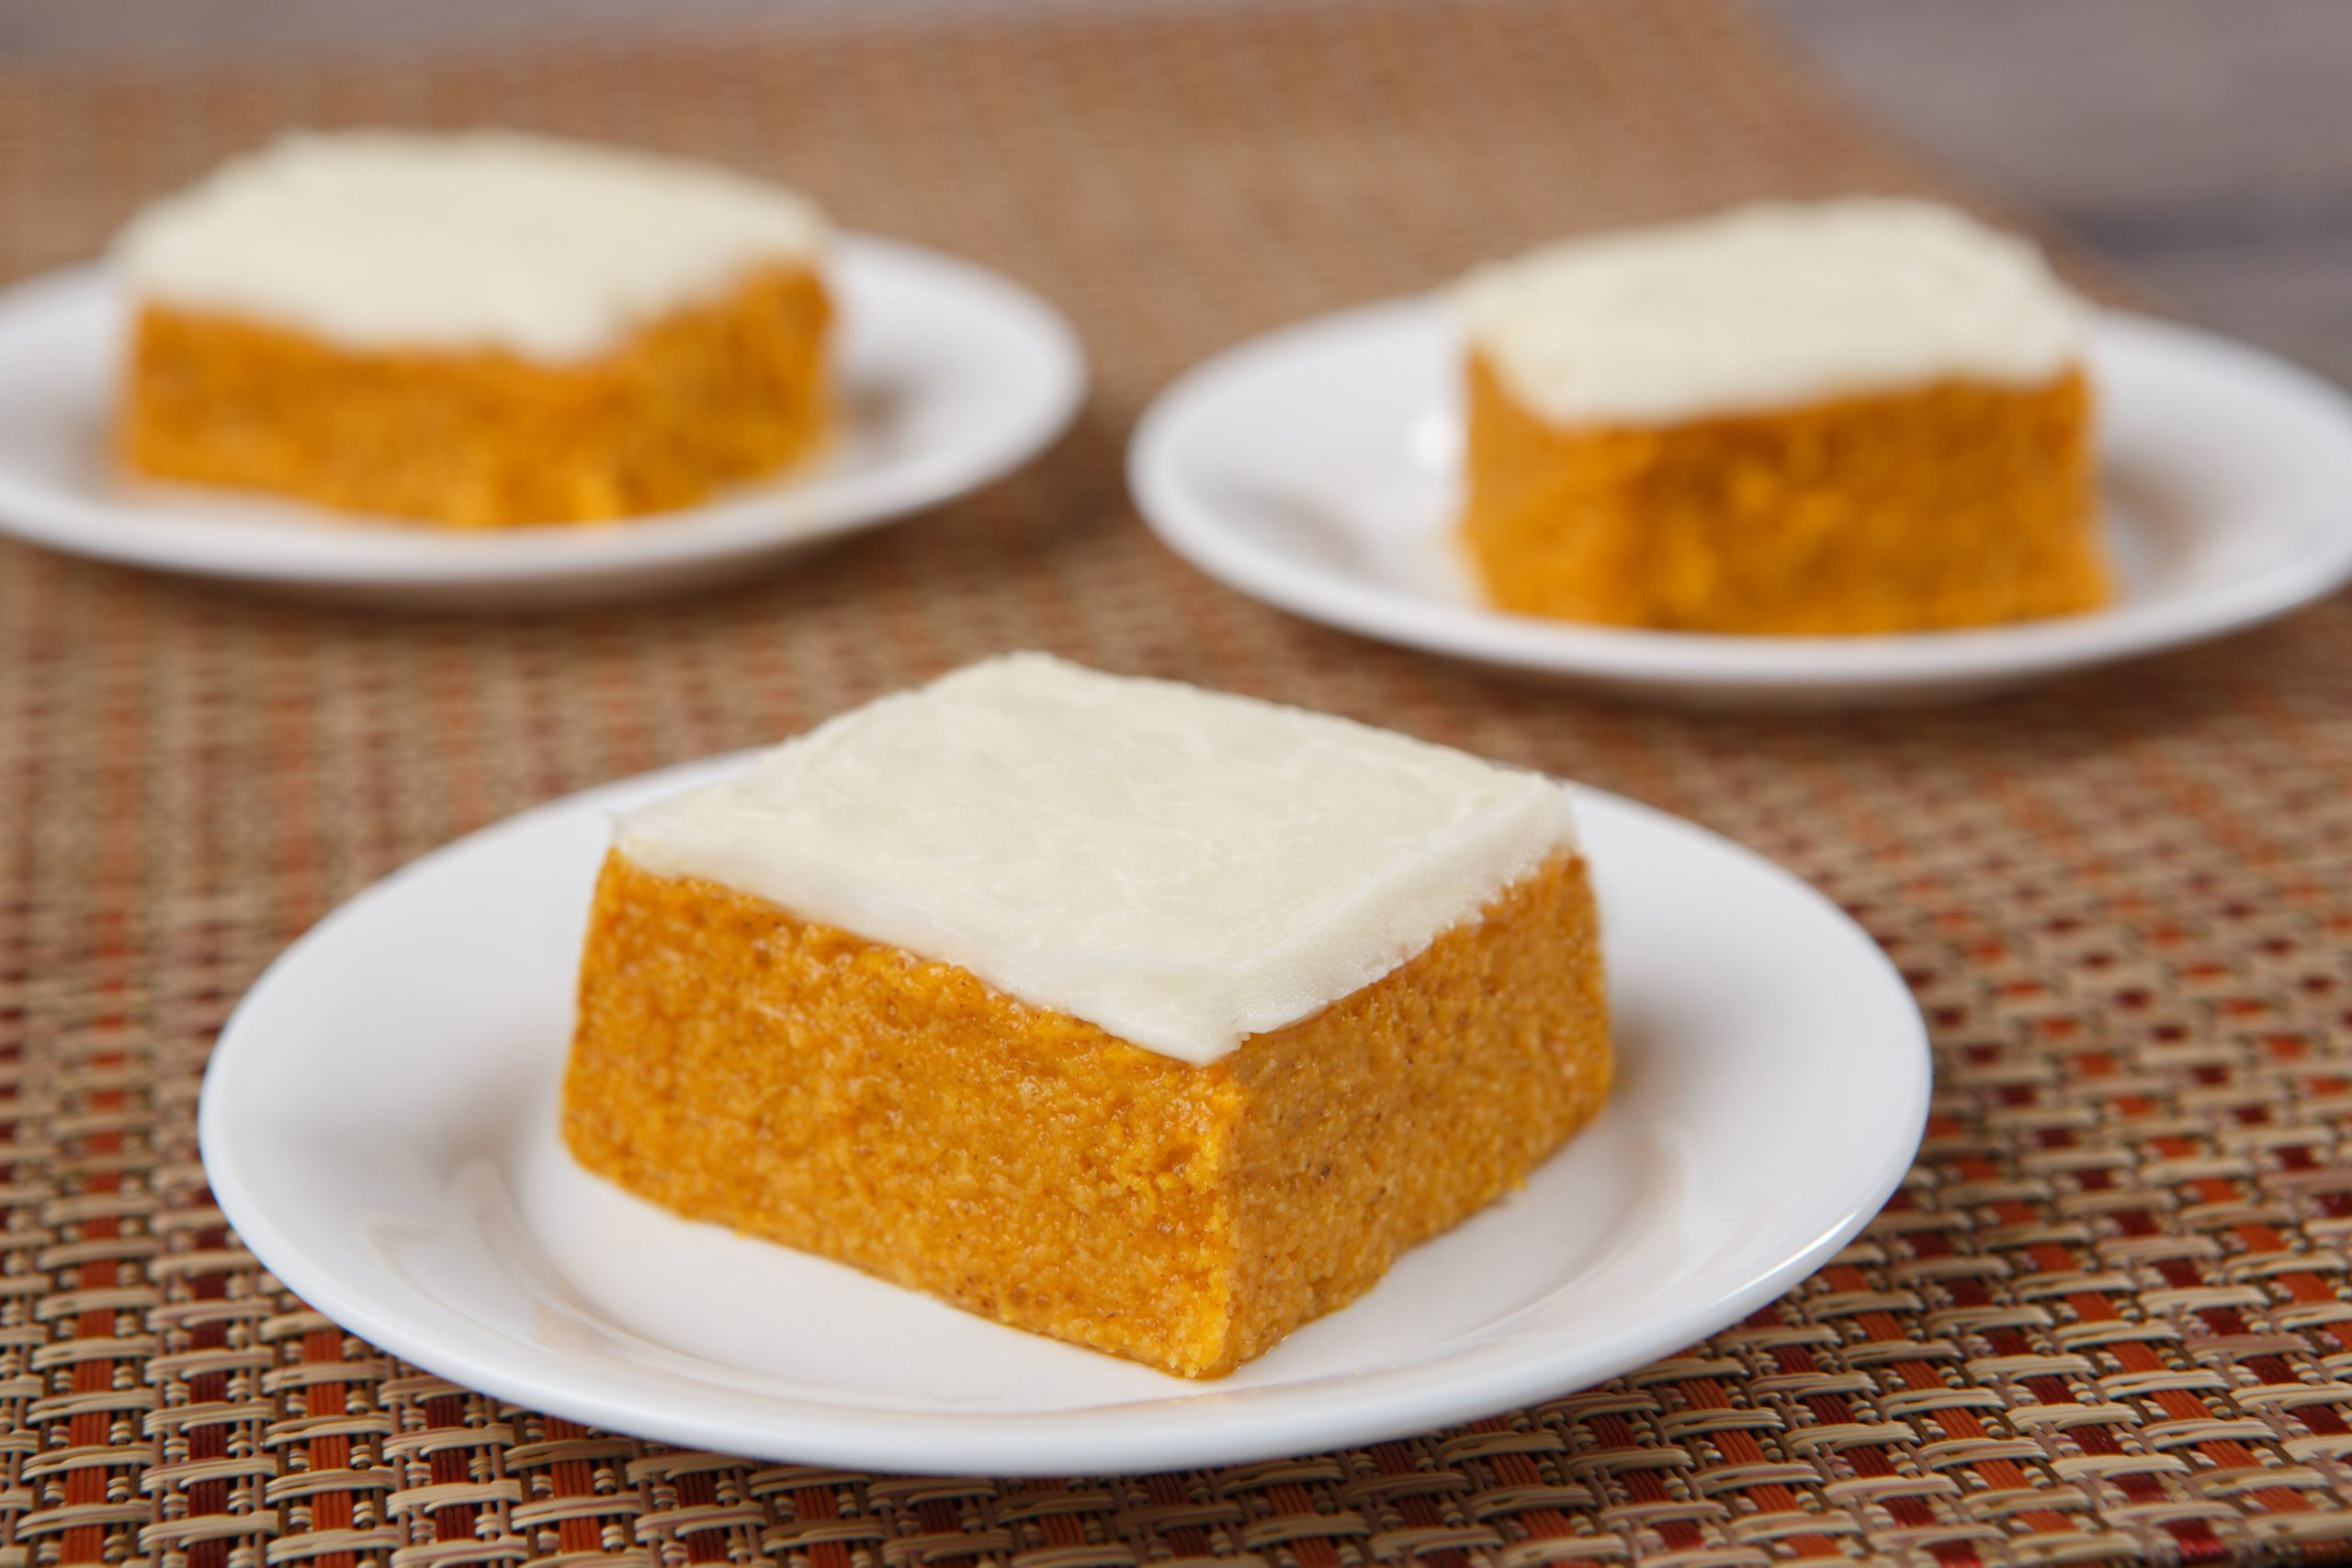 Thickened carrot cake on plate